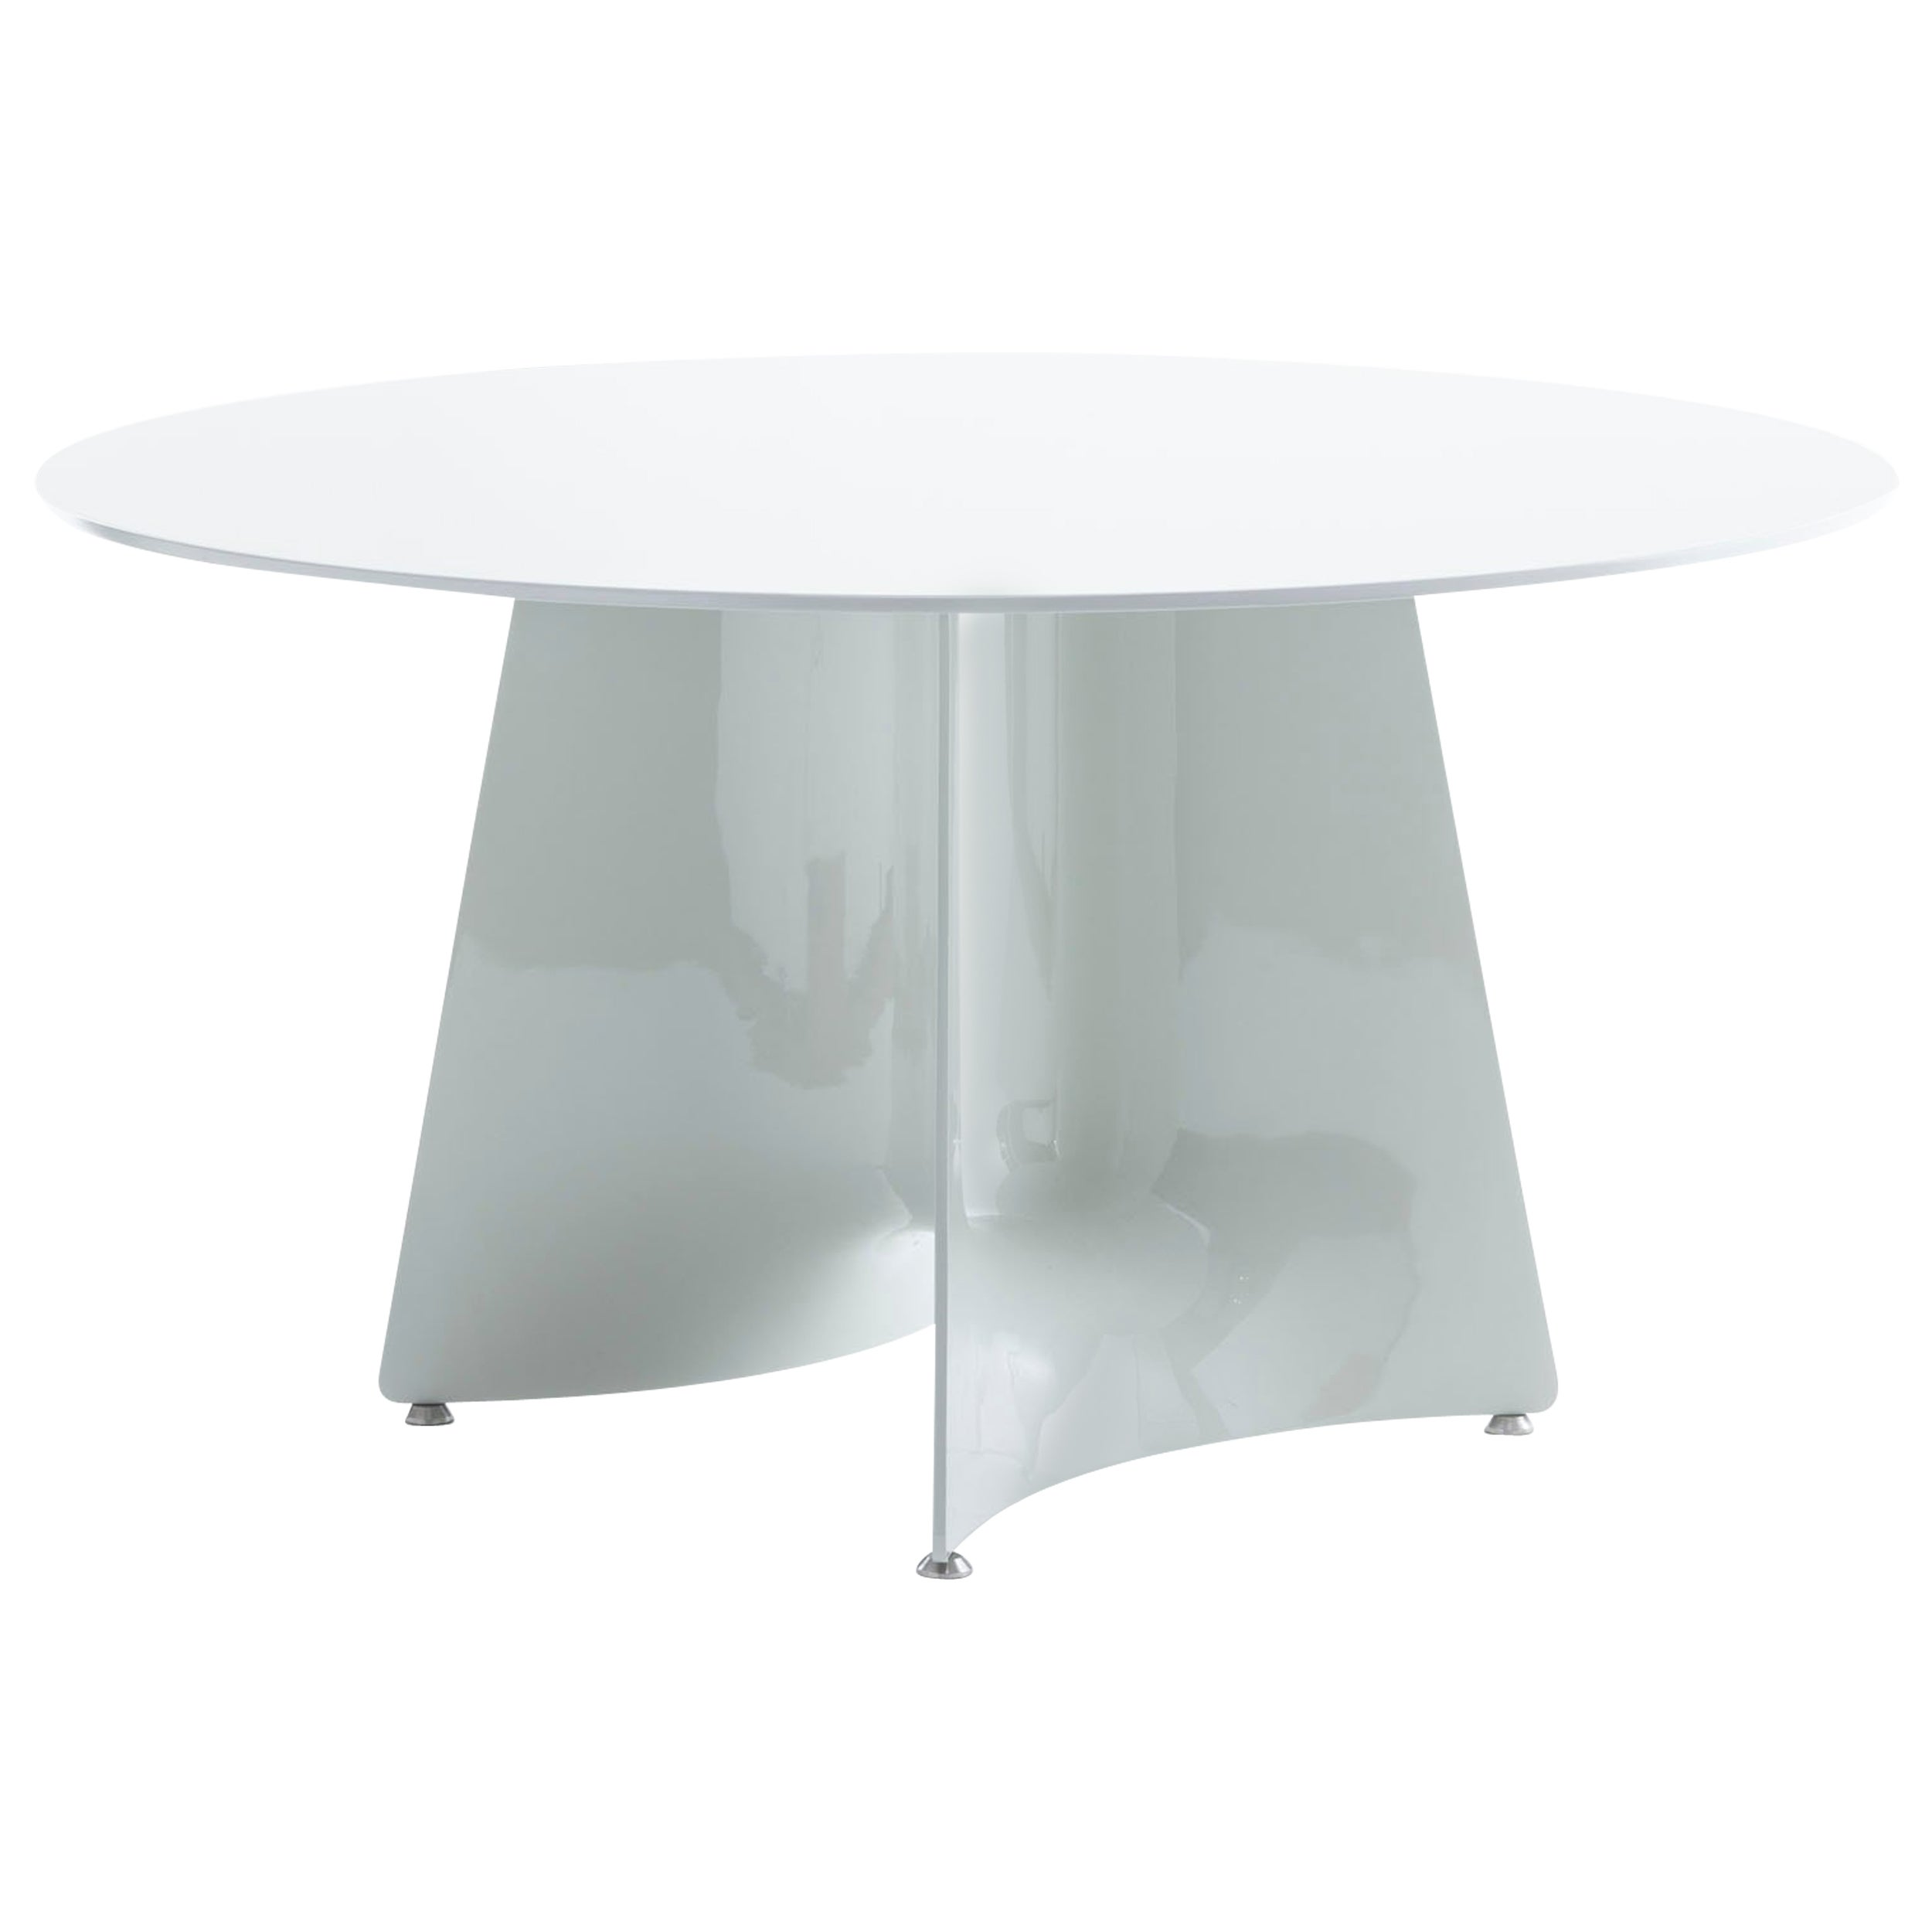 Baleri Italia Bentz High Round White Table with Wood Top by Jeff Miller